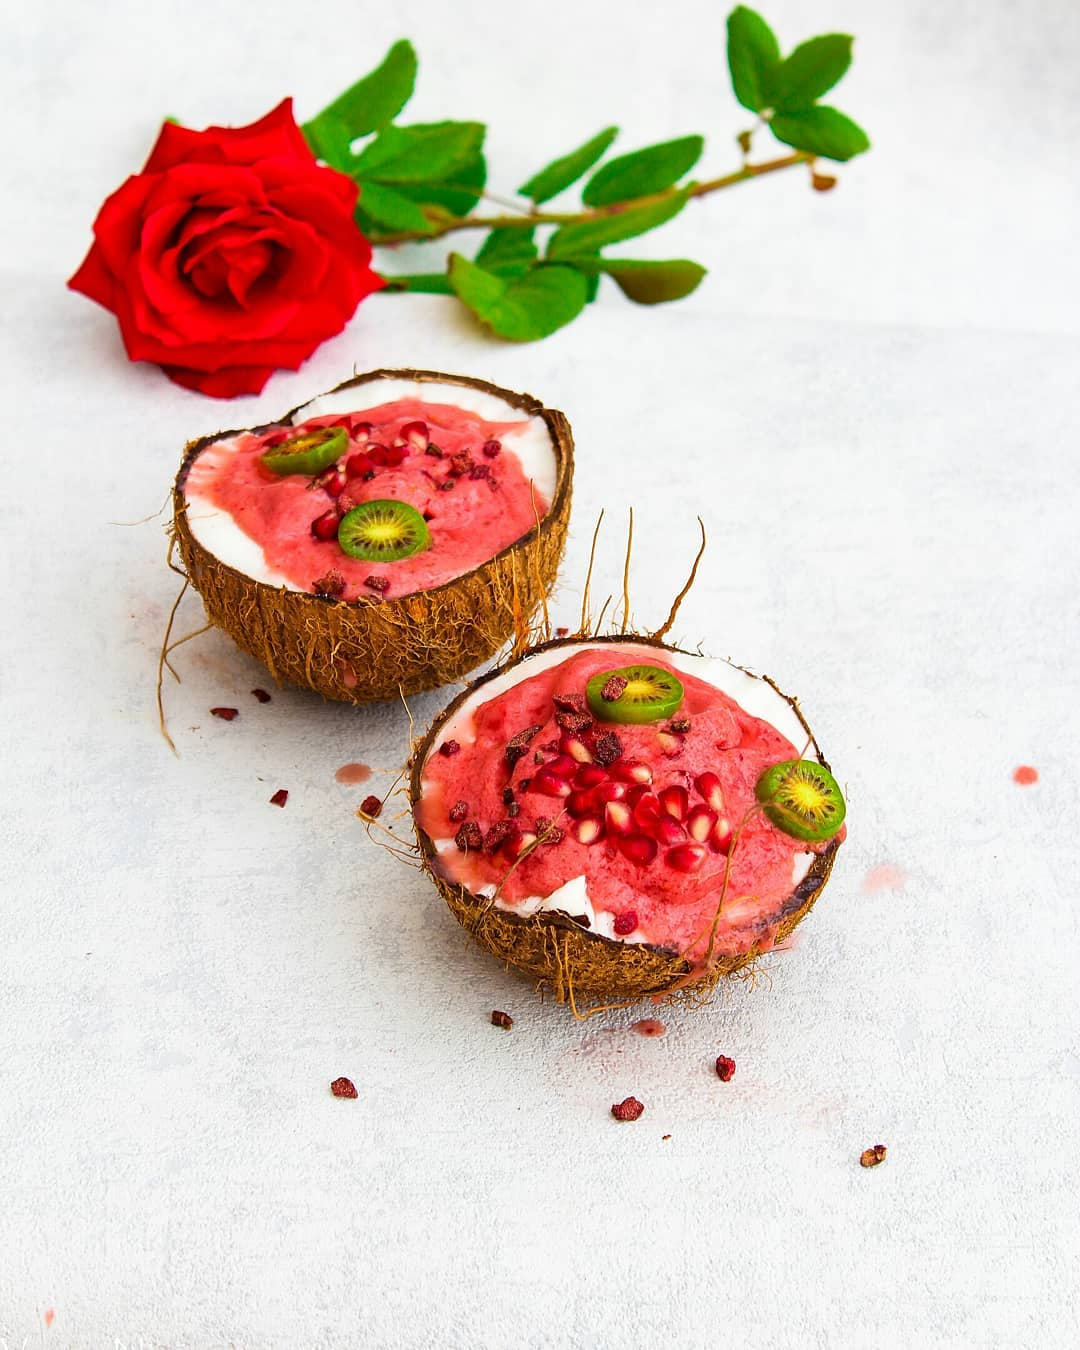 Love And Pride In Vegan Health Blogging | Vegan Niinja - Lysa Magazine Smothie in a coconut with a rose flower